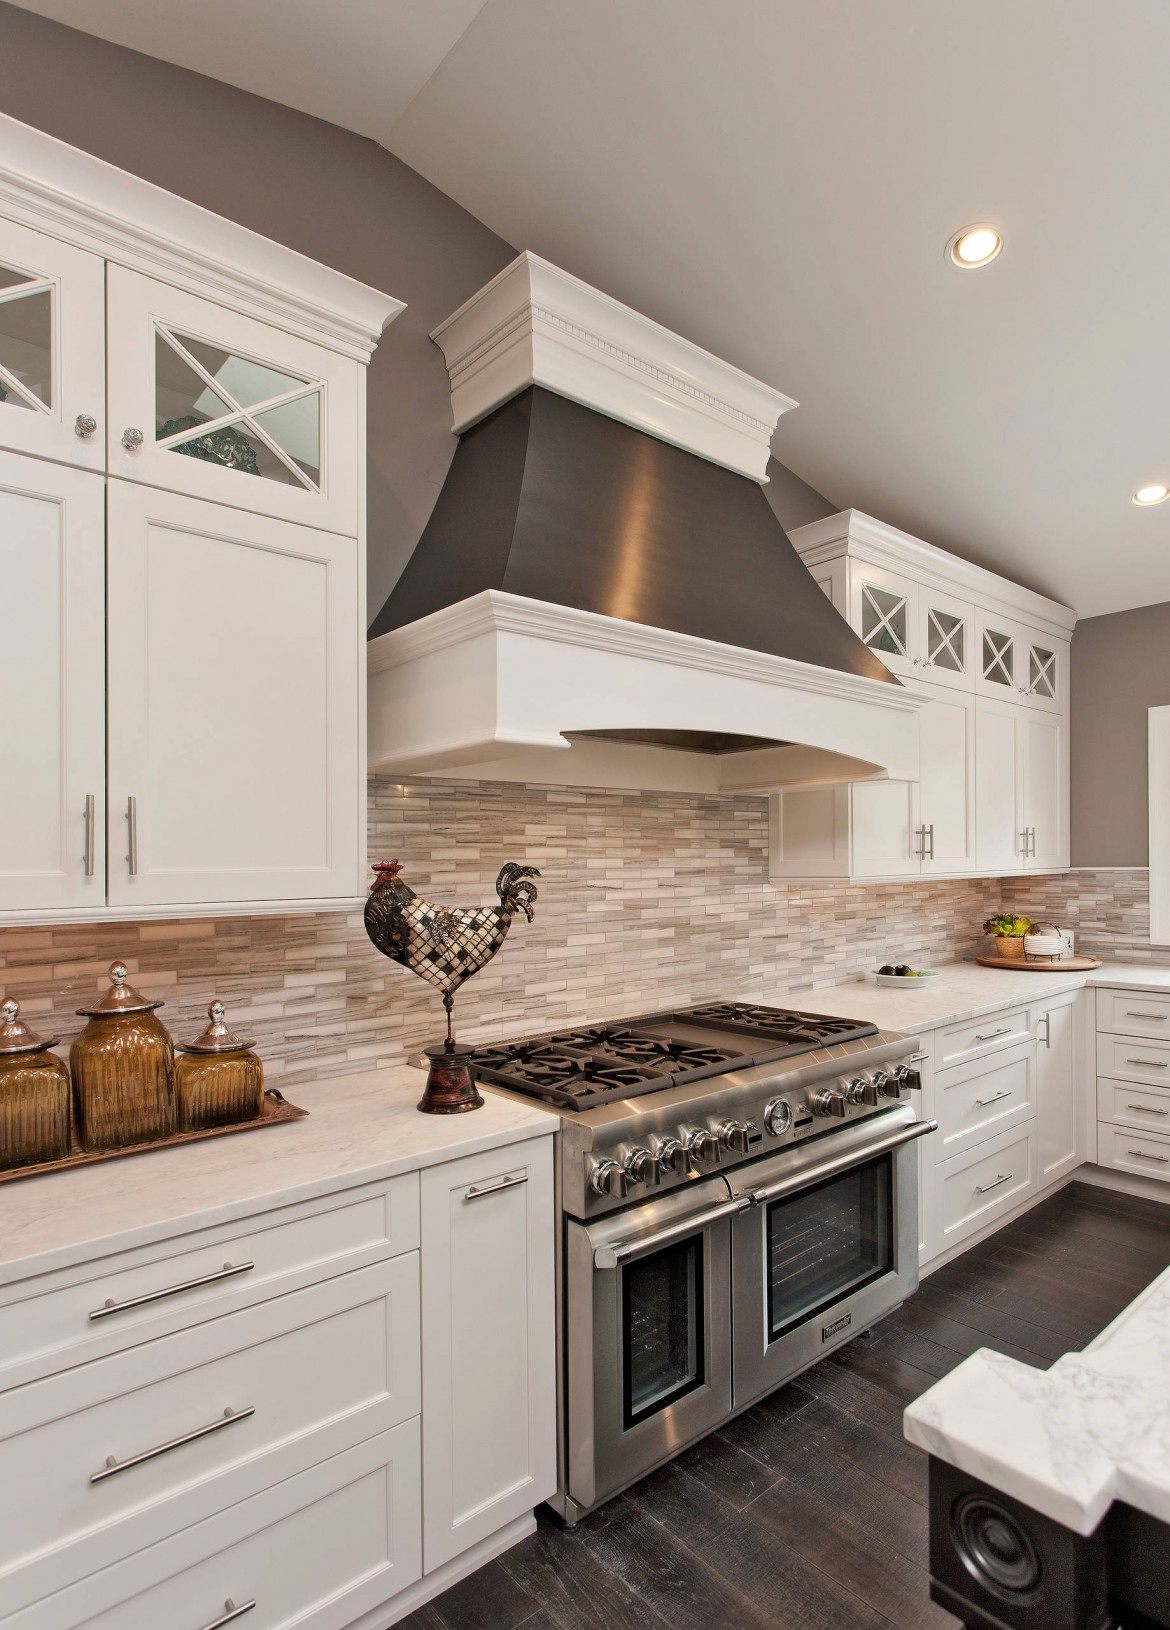 White Kitchen Cabinets With Gold Hardware And Back Splash